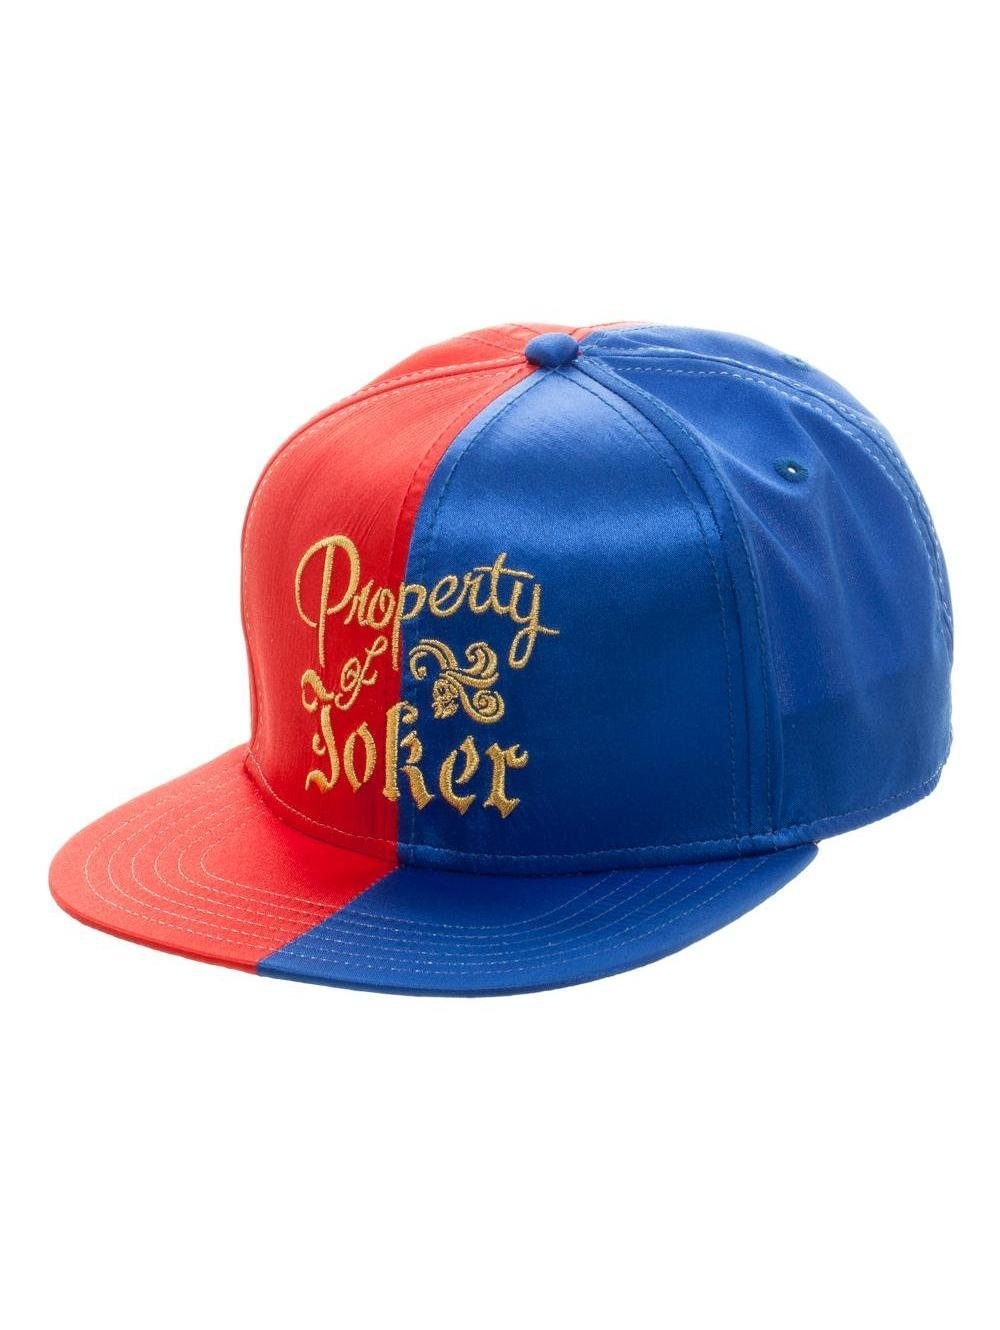 SUICIDE SQUAD - Casquette Property of Joker Satin